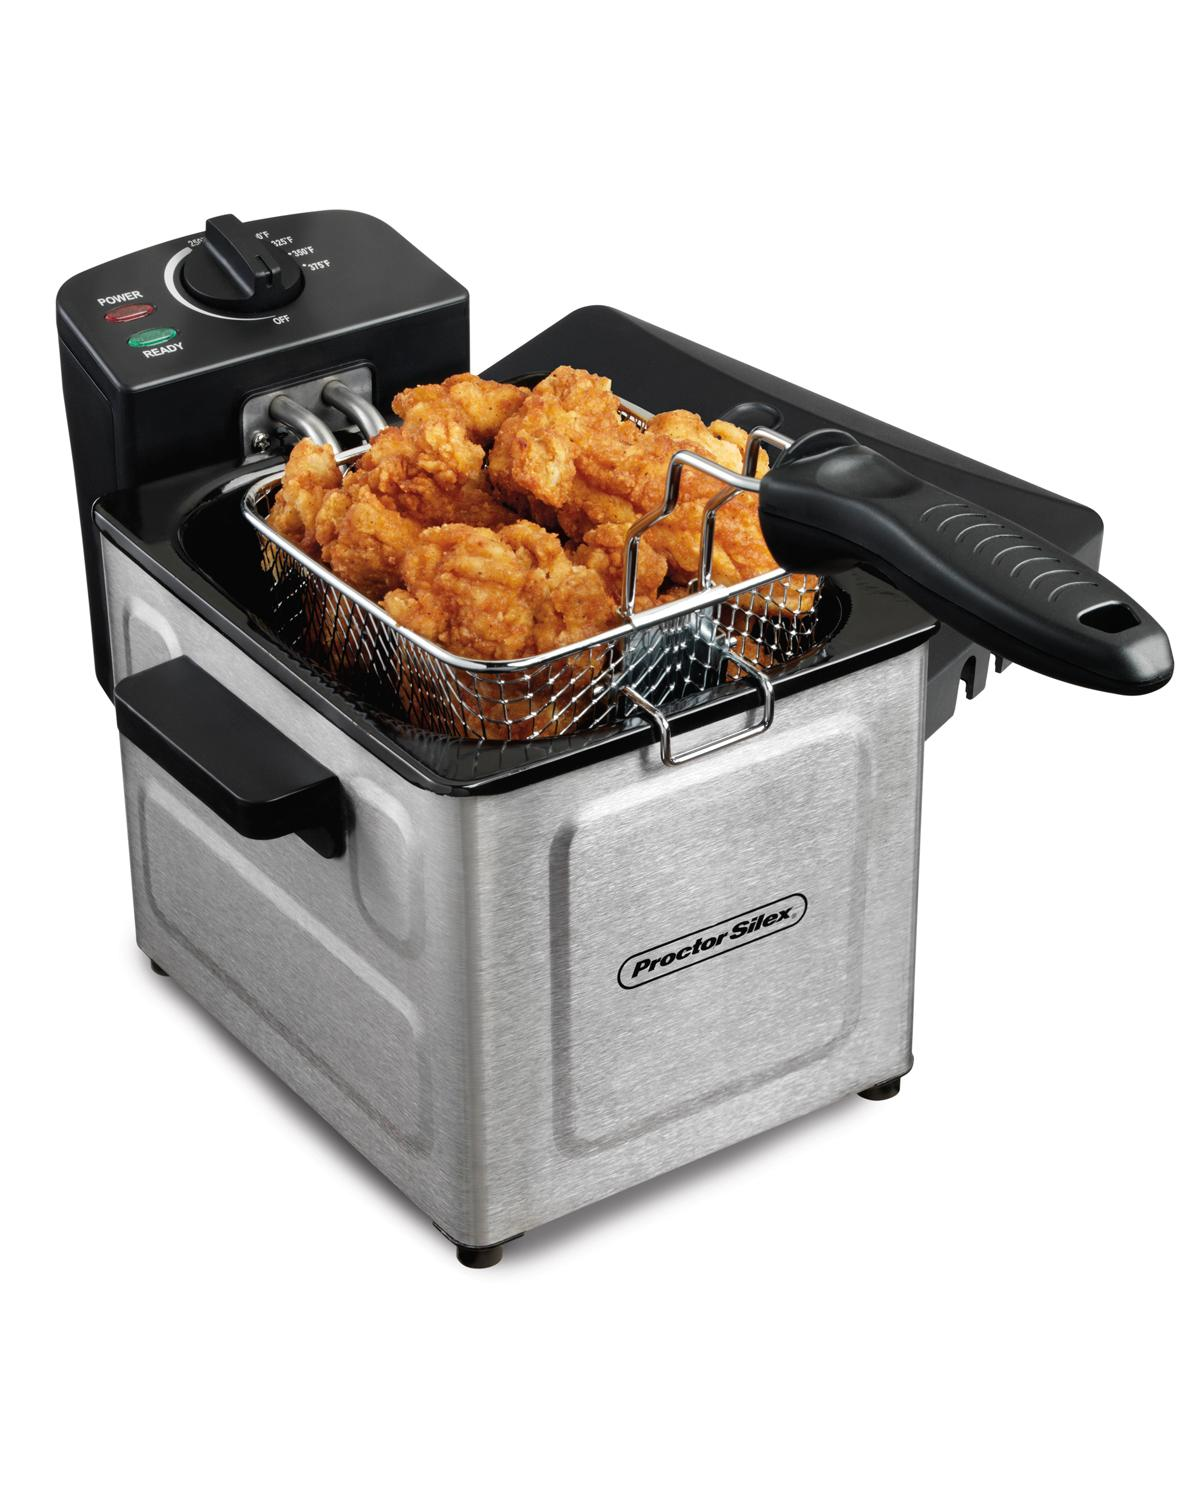 Amazon.com: Proctor Silex (35041) Deep Fryer, With Basket